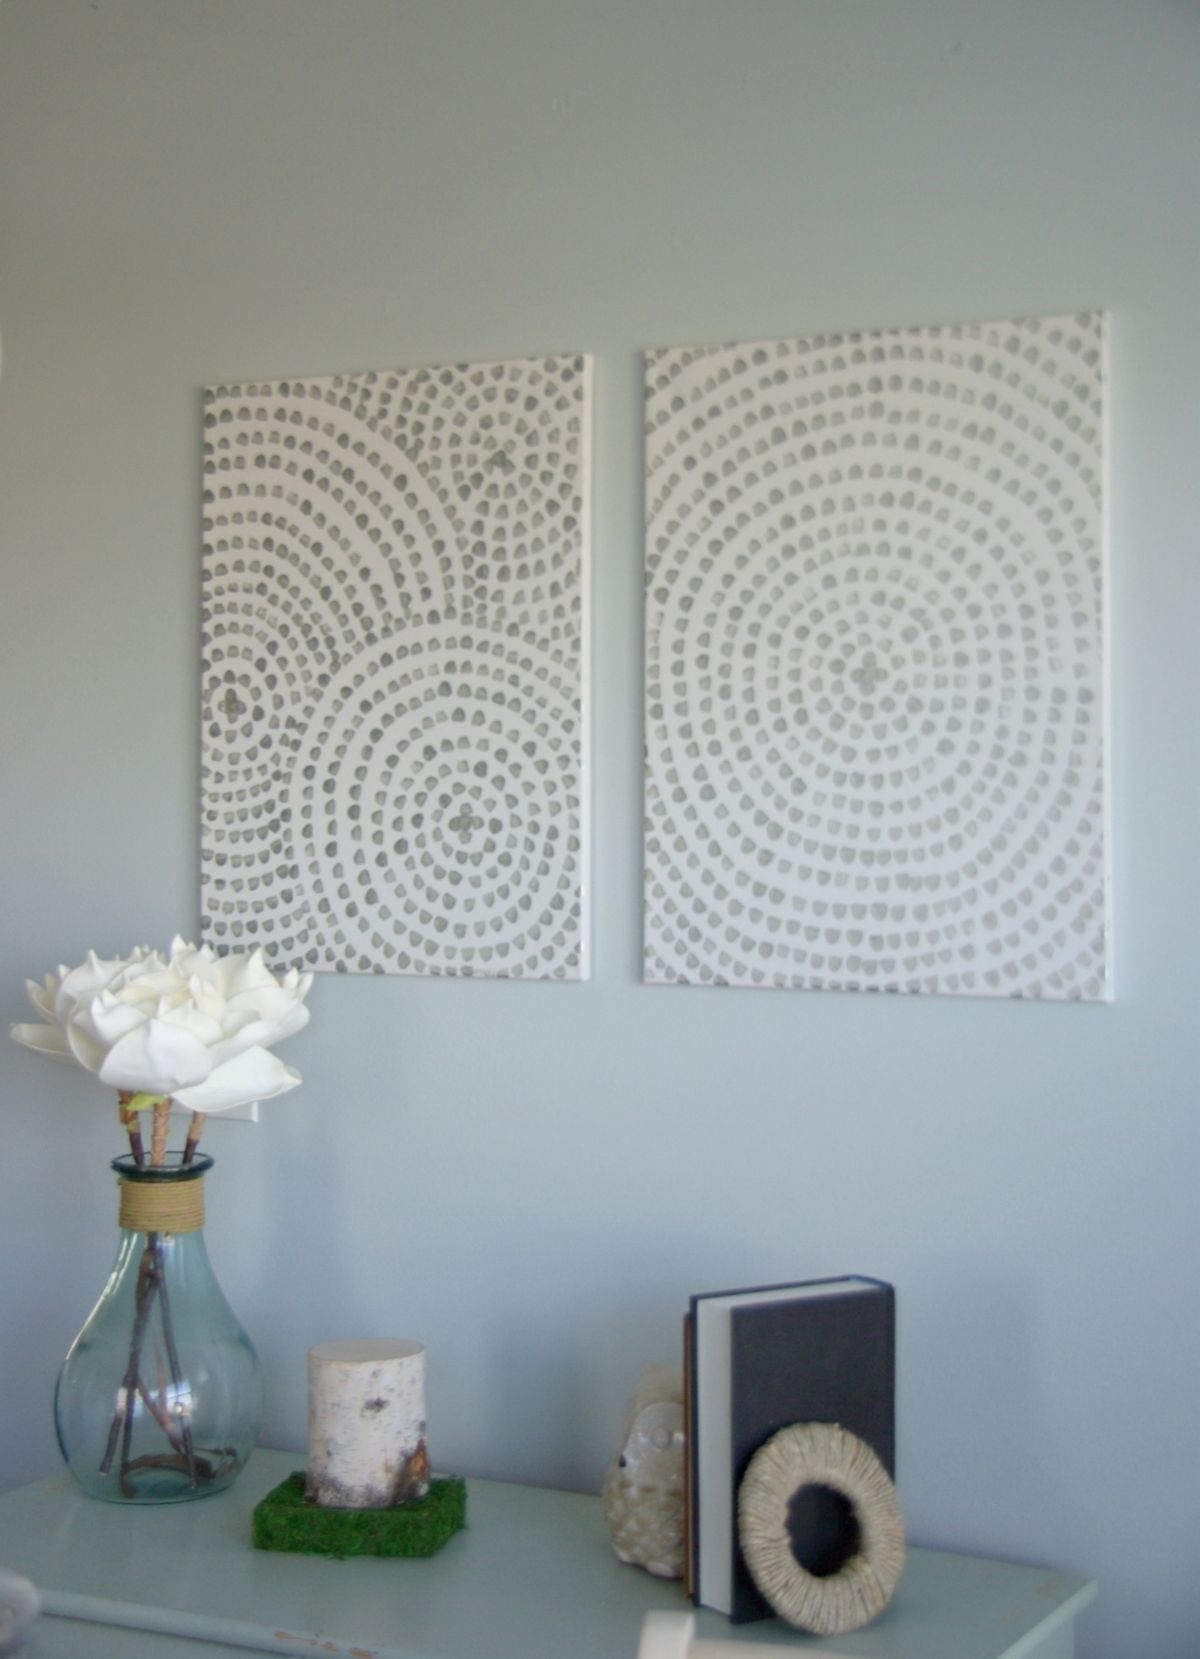 Diy Canvas Wall Art – A Low Cost Way To Add Art To Your Home | My With Best And Newest Wall Art Diy (View 5 of 20)